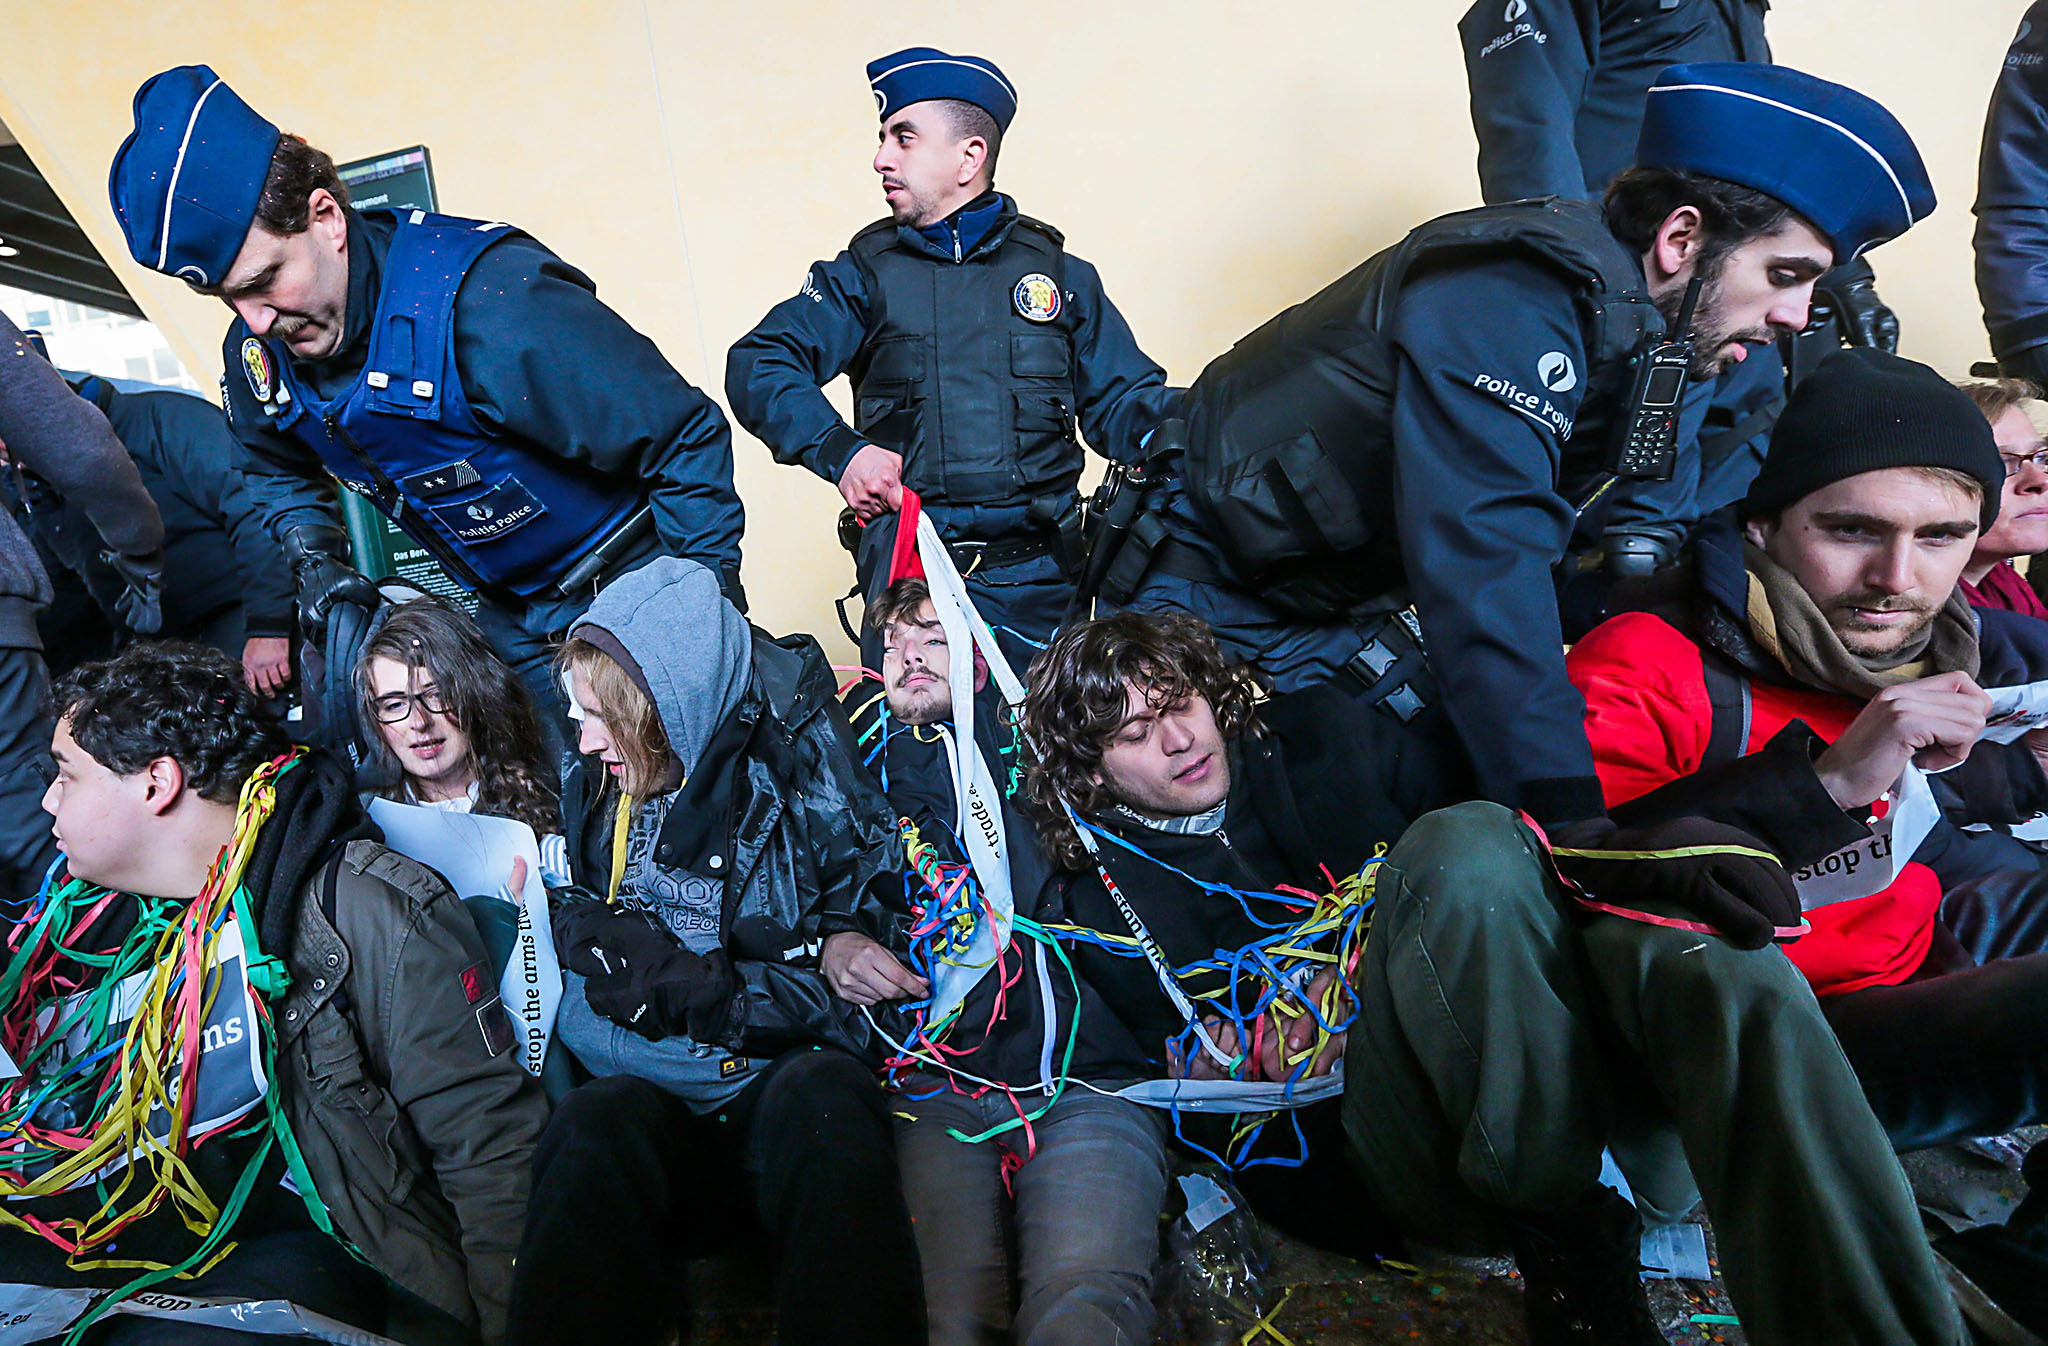 Police intervene when activists block the entrance of the European Commission while they protest in front of the building of the European Commission against the subsidies of Europe in the armaments industry in Brussels, Belgium, 10 November 2016. Police decide to close the neighborhood as a measure of security.  EPA/STEPHANIE LECOCQ